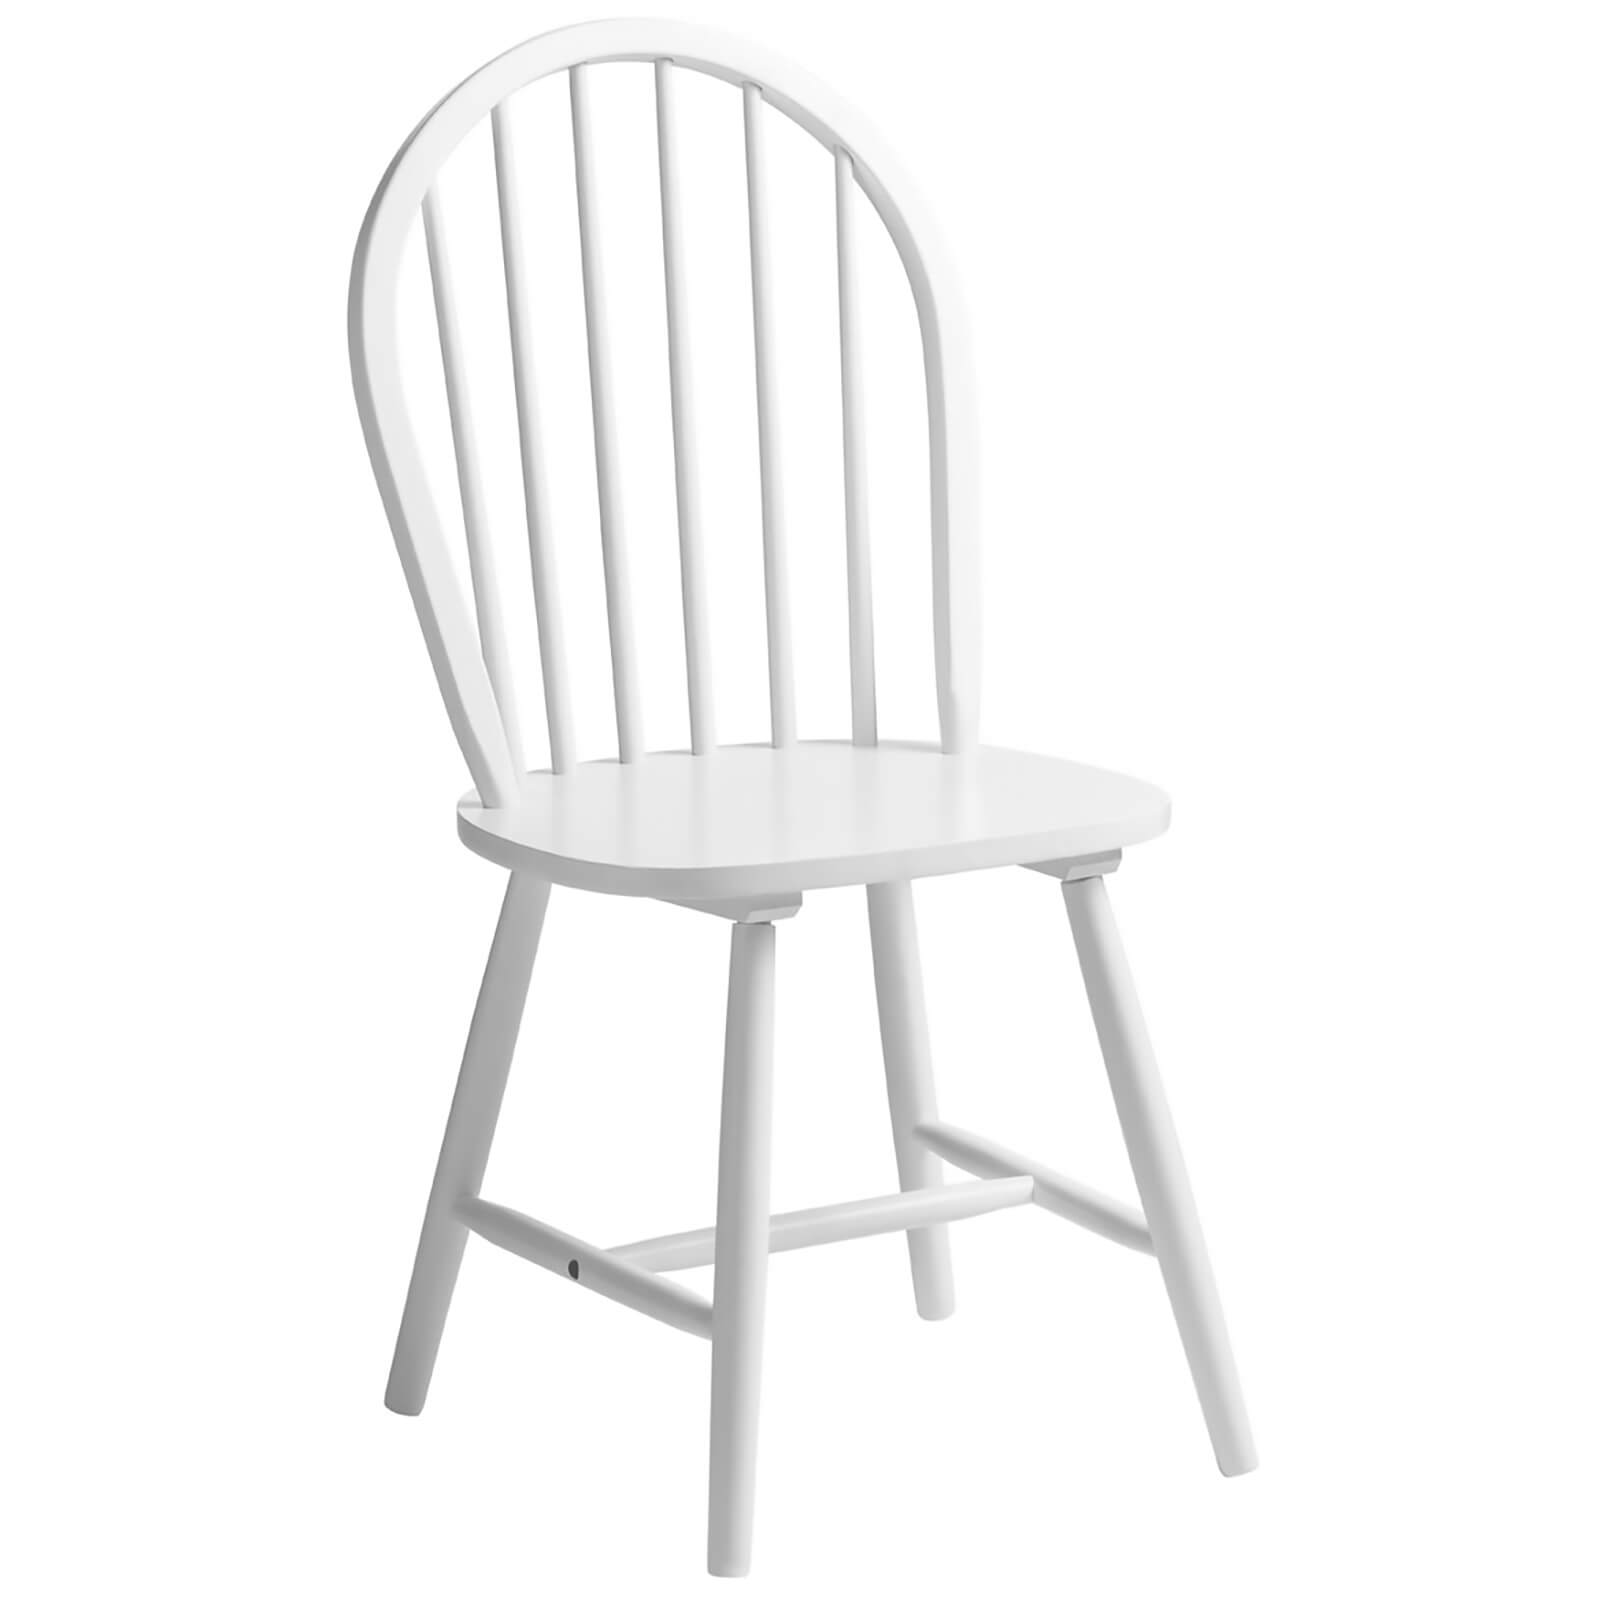 Fifty Five South Vermont Boston Chair - White Wood